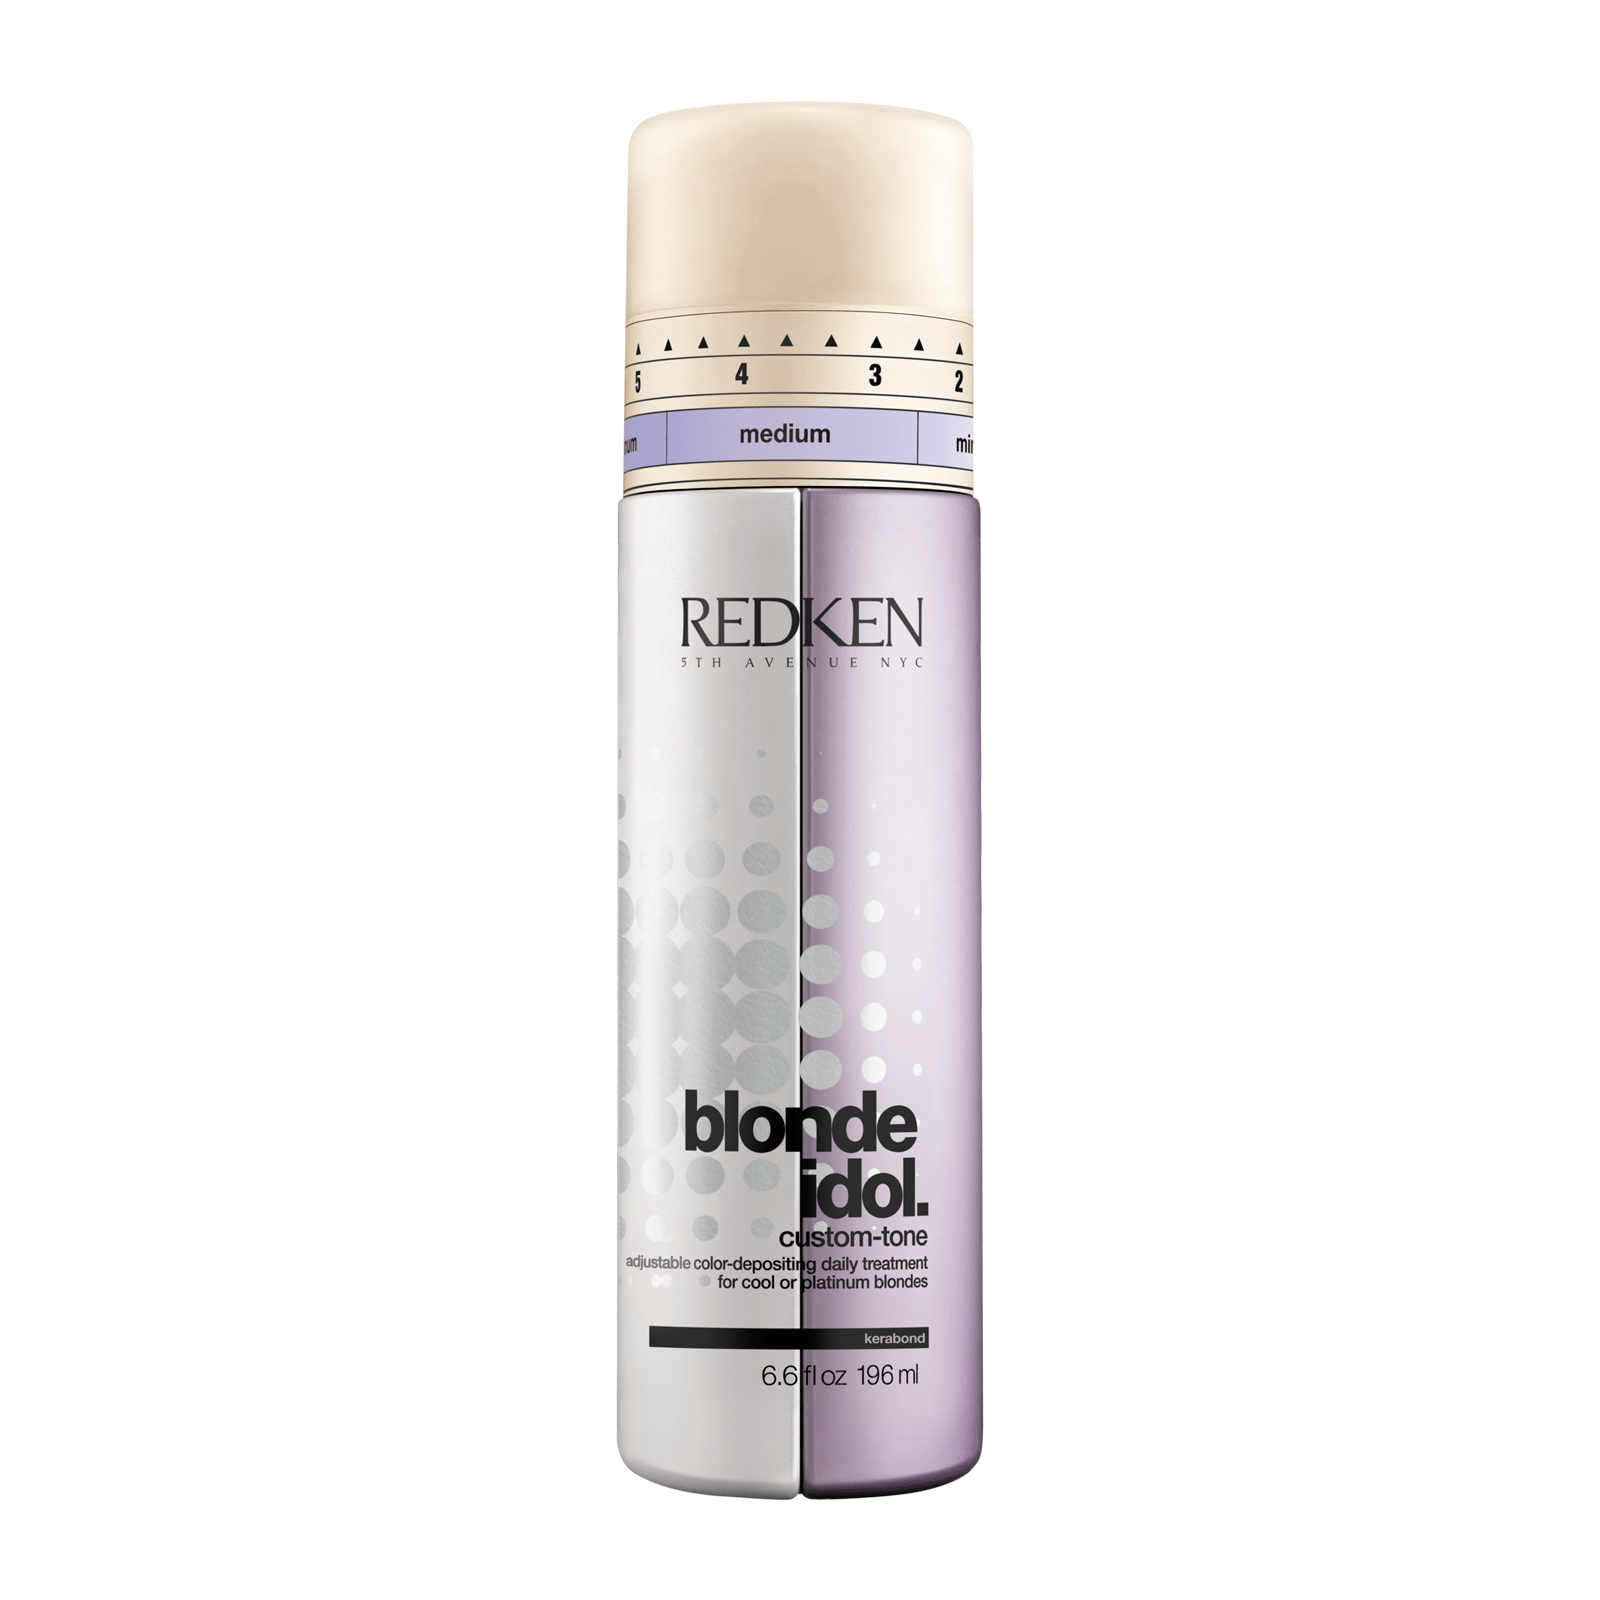 Redken Blonde Idol Custom-Tone - 196ml